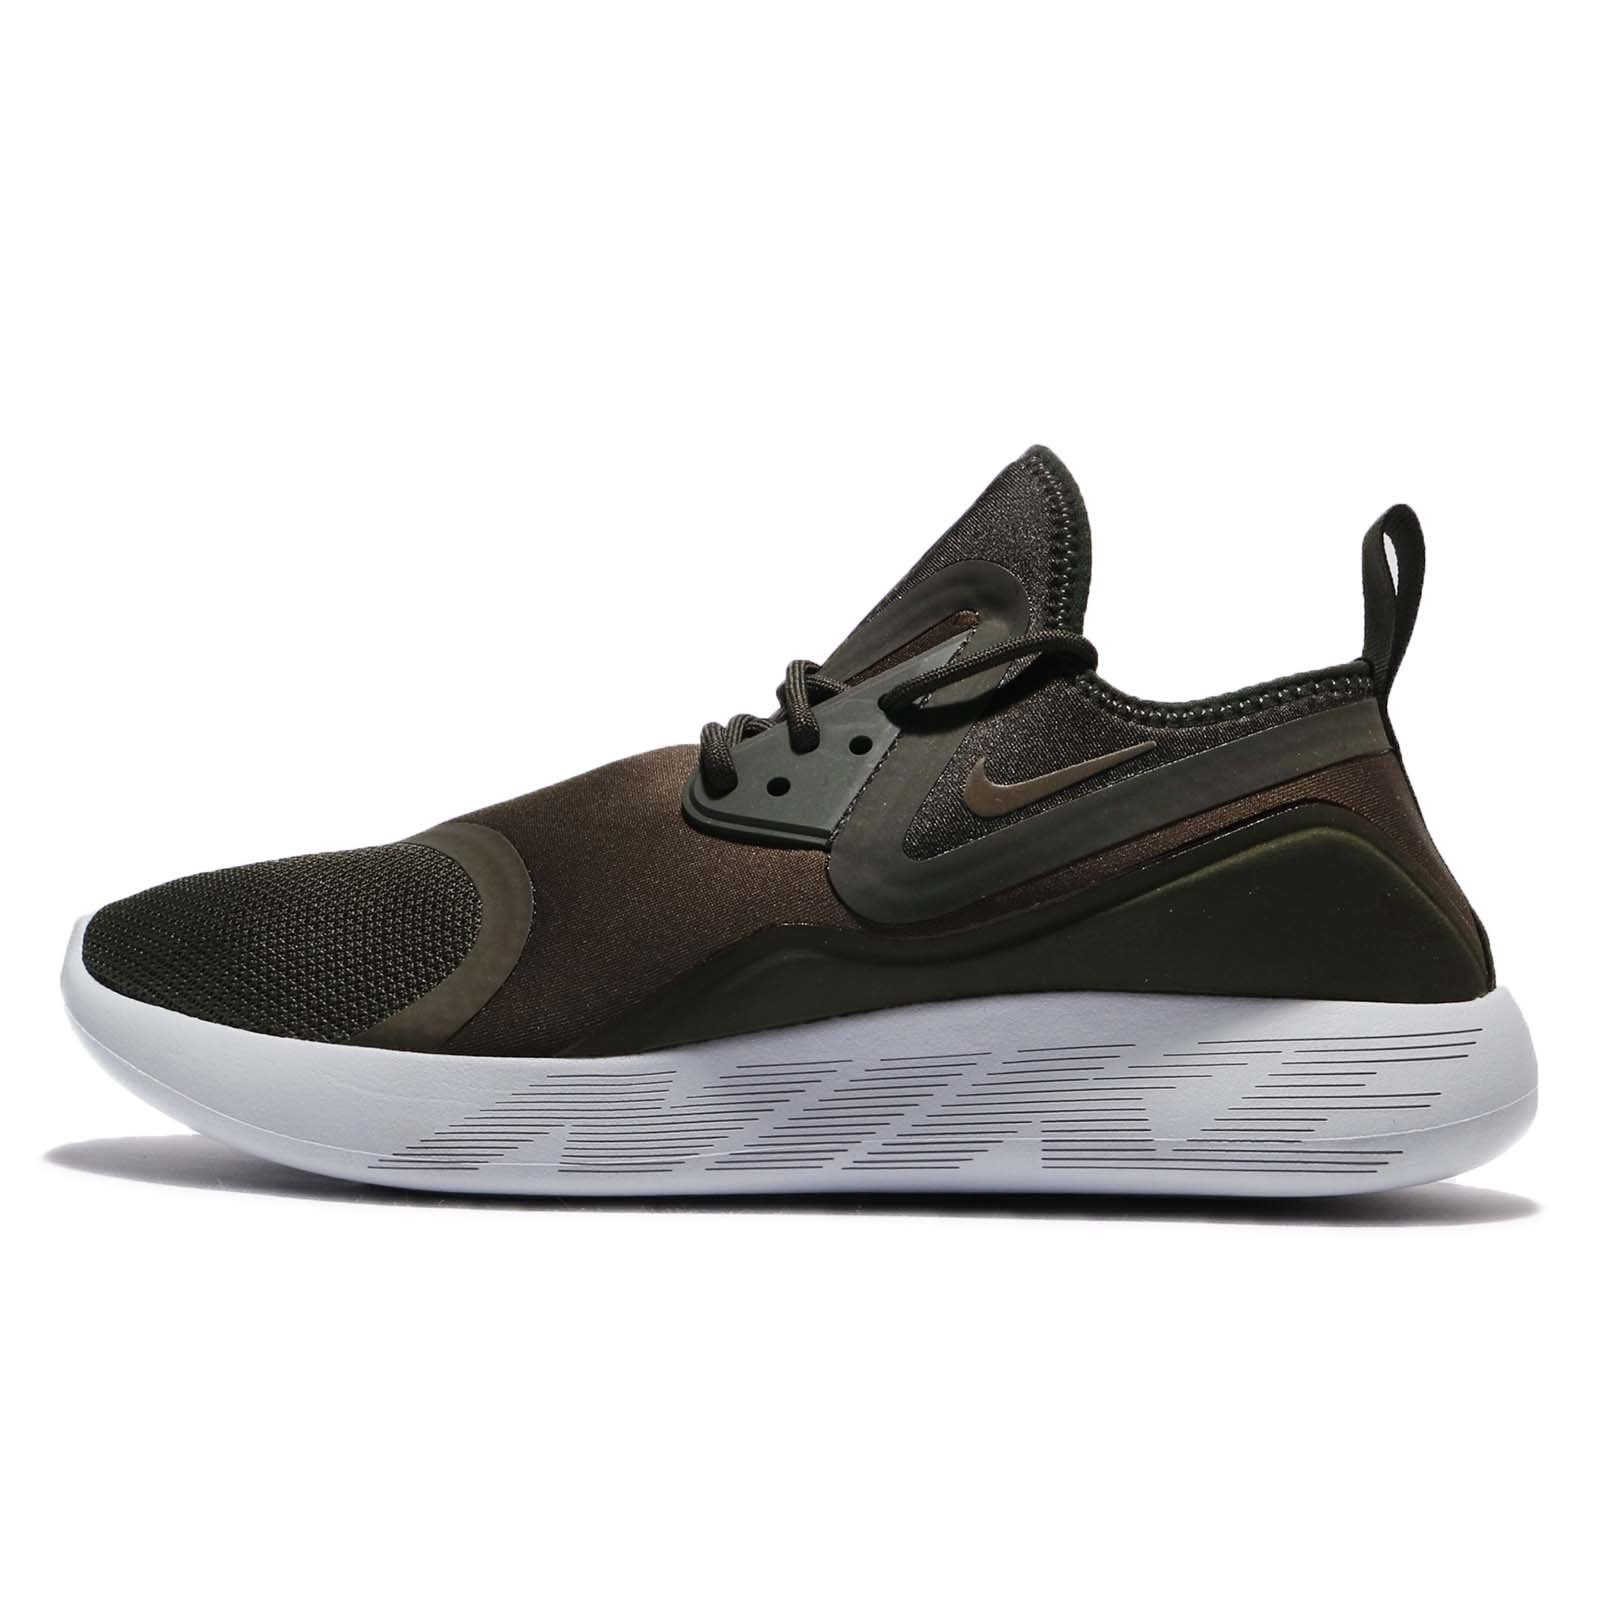 Nike Lunarcharge Essential Mens Running Trainers 923619 Sneakers Shoes (UK  11 US 12 EU 46, Cargo Khaki 301)